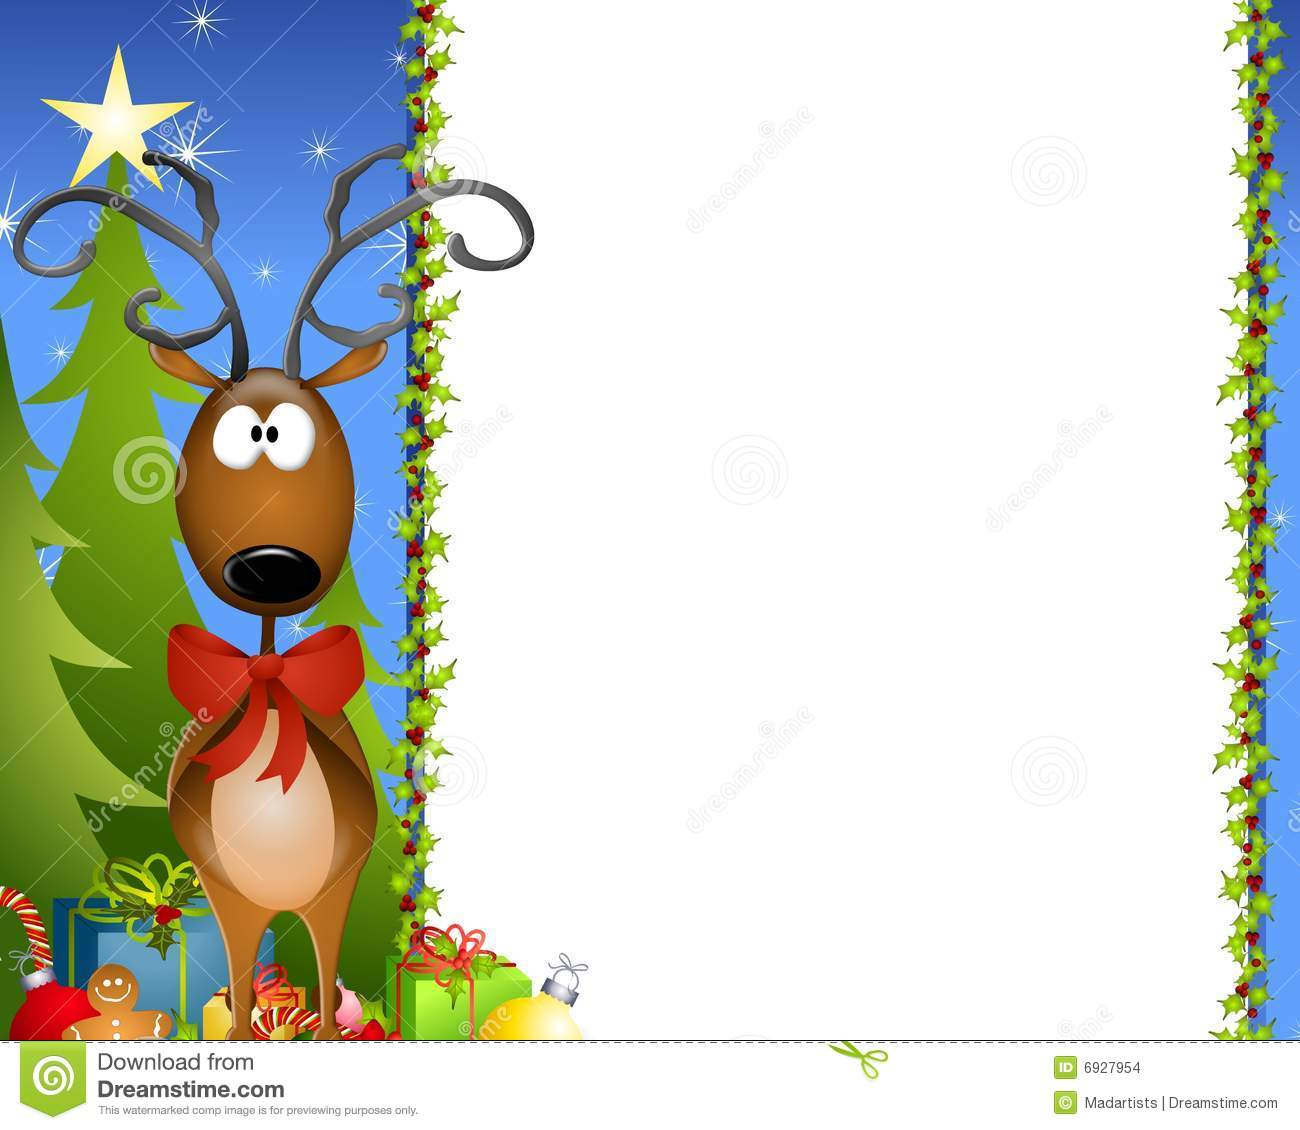 Border Illustration Featuring A Christmas Tree Border With Reindeer